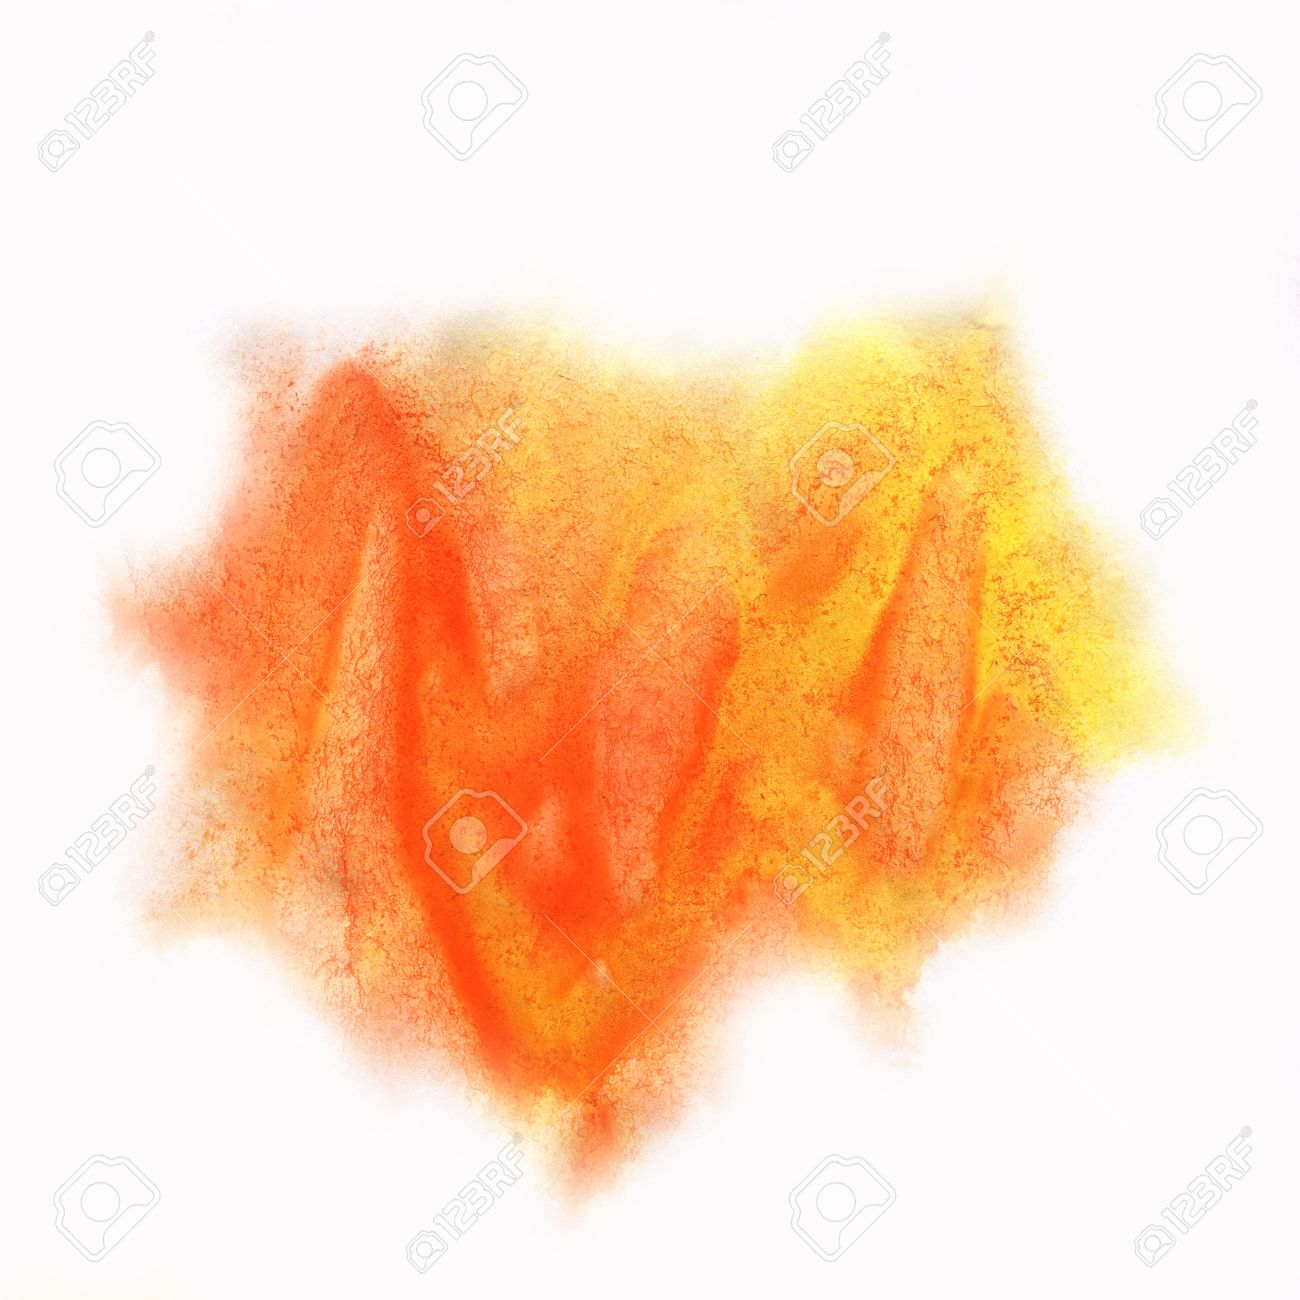 Color Splash Stroke Abstract Yellow Orange Red Watercolor Spot Macro  Watercolour Blotch Texture Isolated White Background